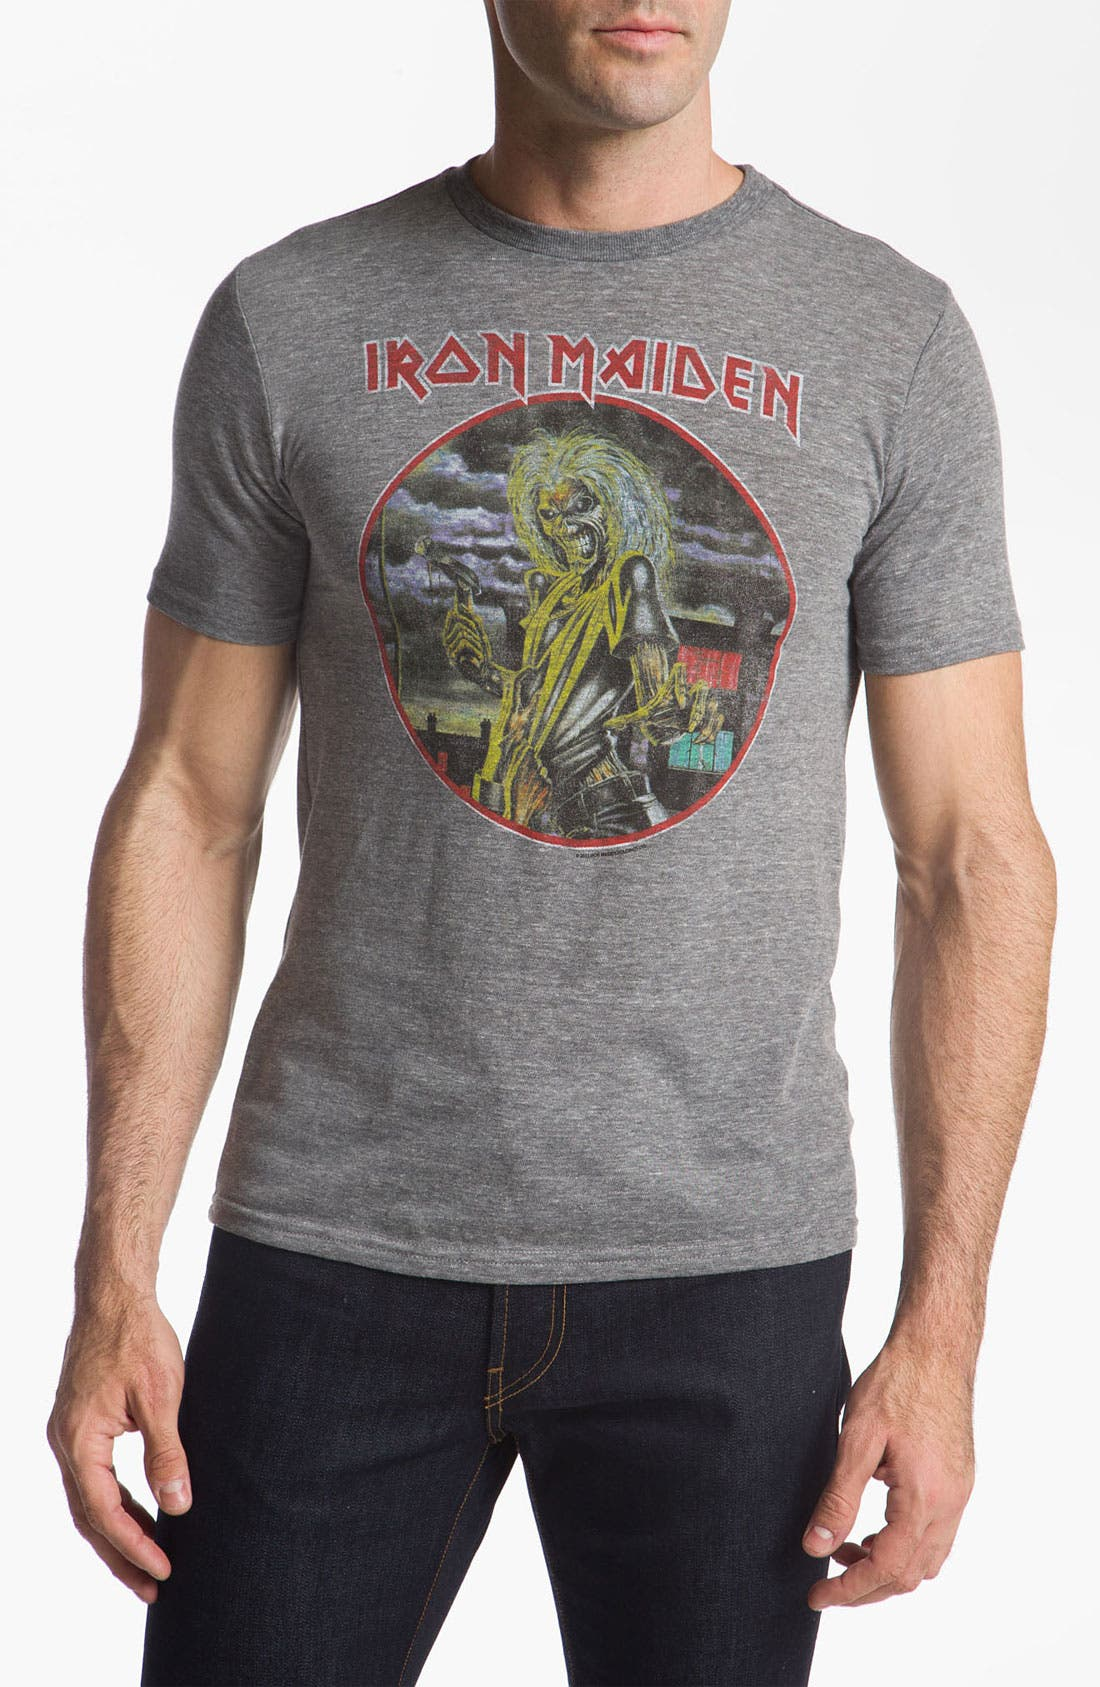 Alternate Image 1 Selected - Chaser 'Iron Maiden' Graphic T-Shirt